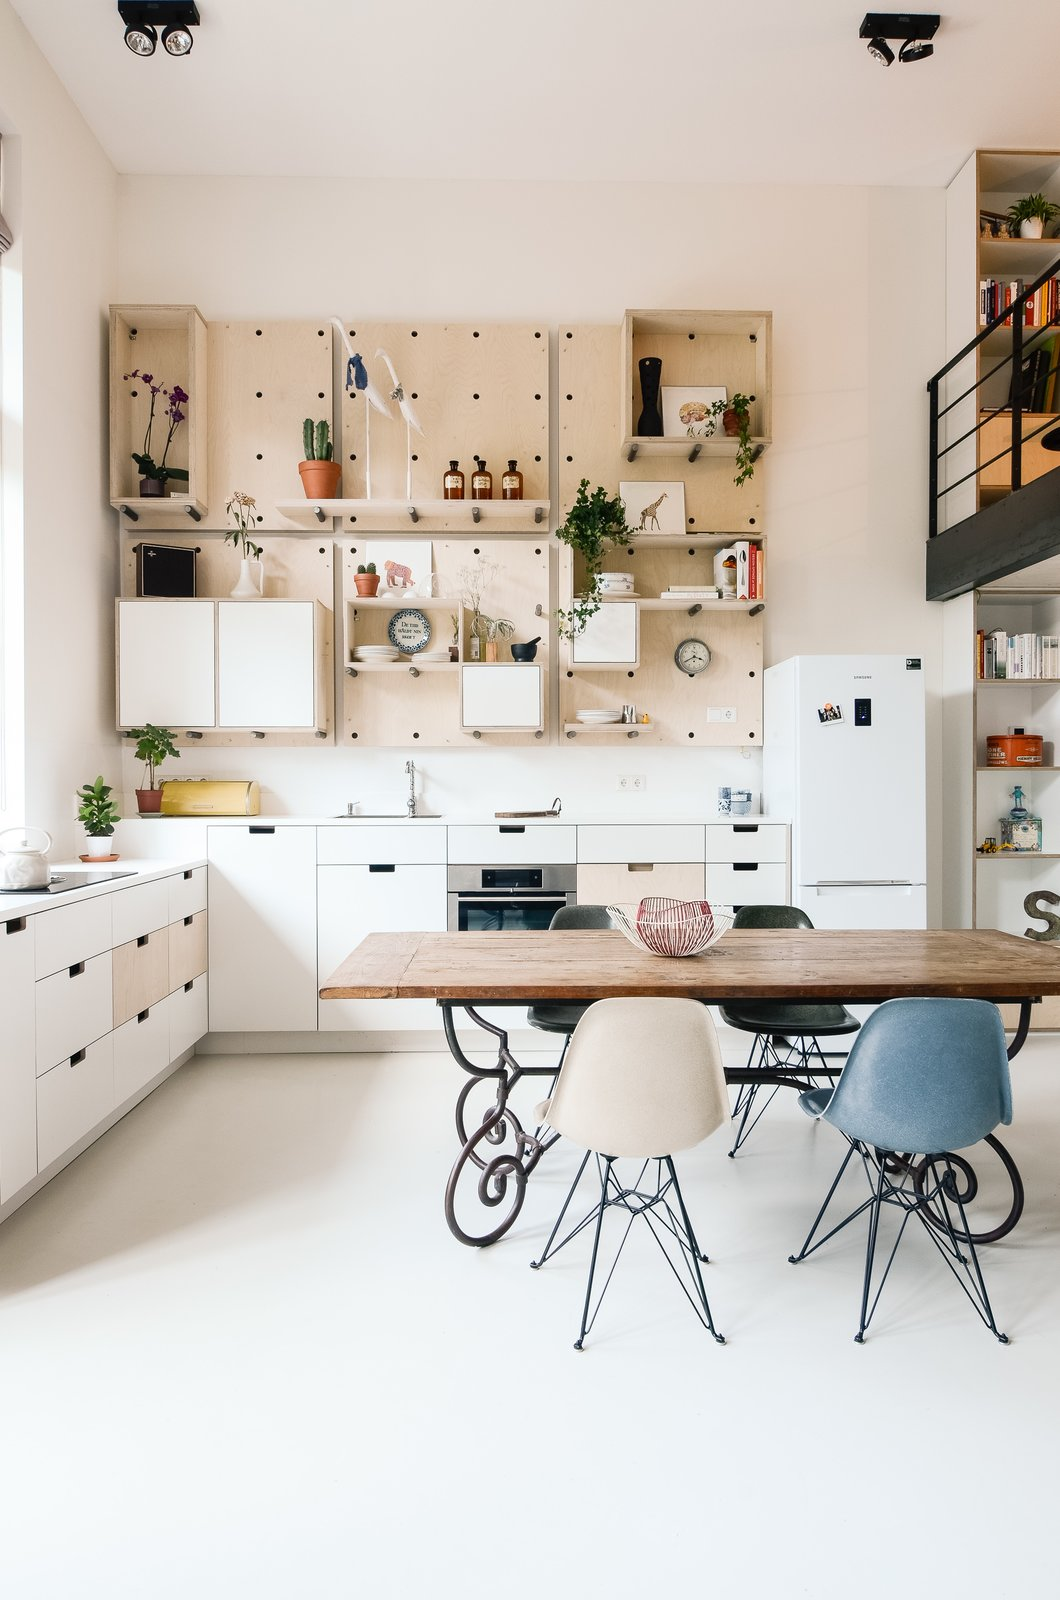 Kitchen, Refrigerator, White Cabinet, Open Cabinet, and Ceiling Lighting The kitchen is completely open to the main living area and features a custom birch pegboard wall. Eames dining chairs accent the space.  Photo 4 of 21 in 20 Dream Kitchens from Schoolhouses Turned into Modern Homes